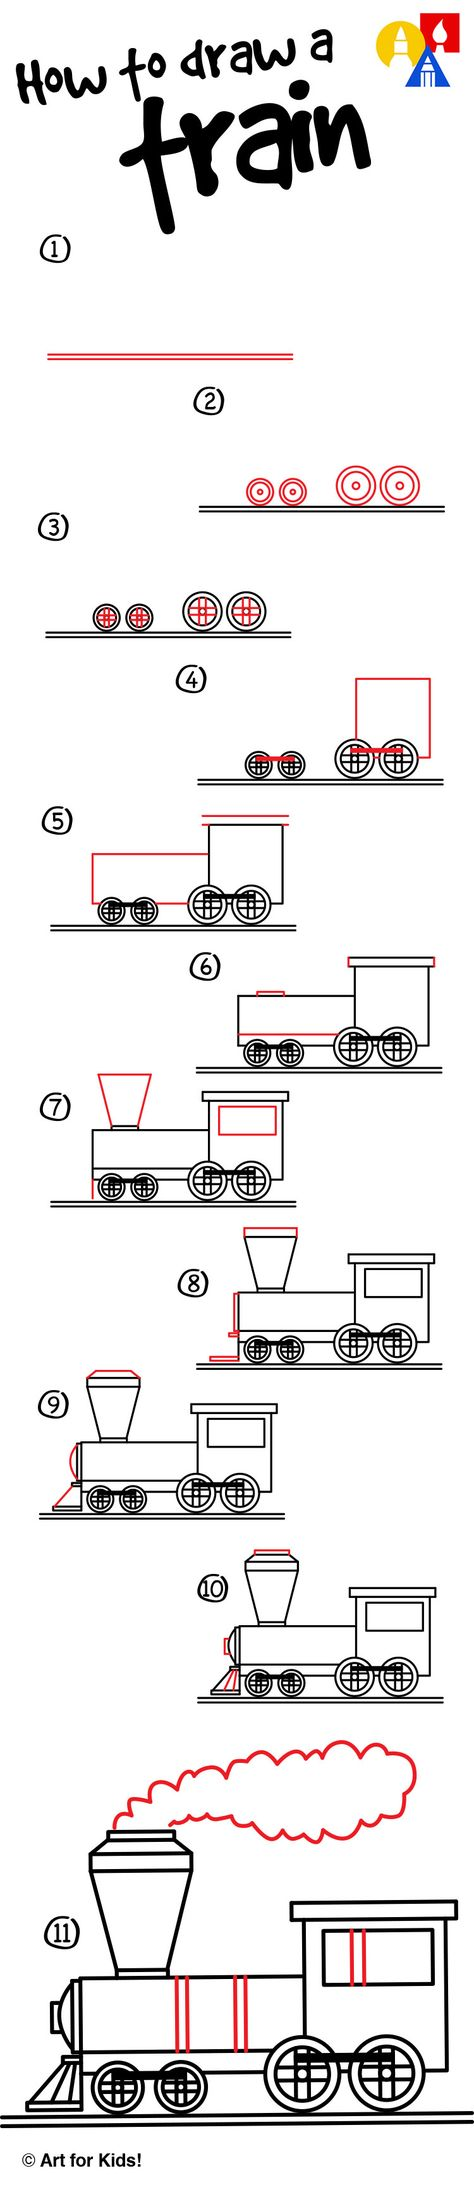 Easy steps on how to draw a train! Watch our short video and follow along to draw your own.